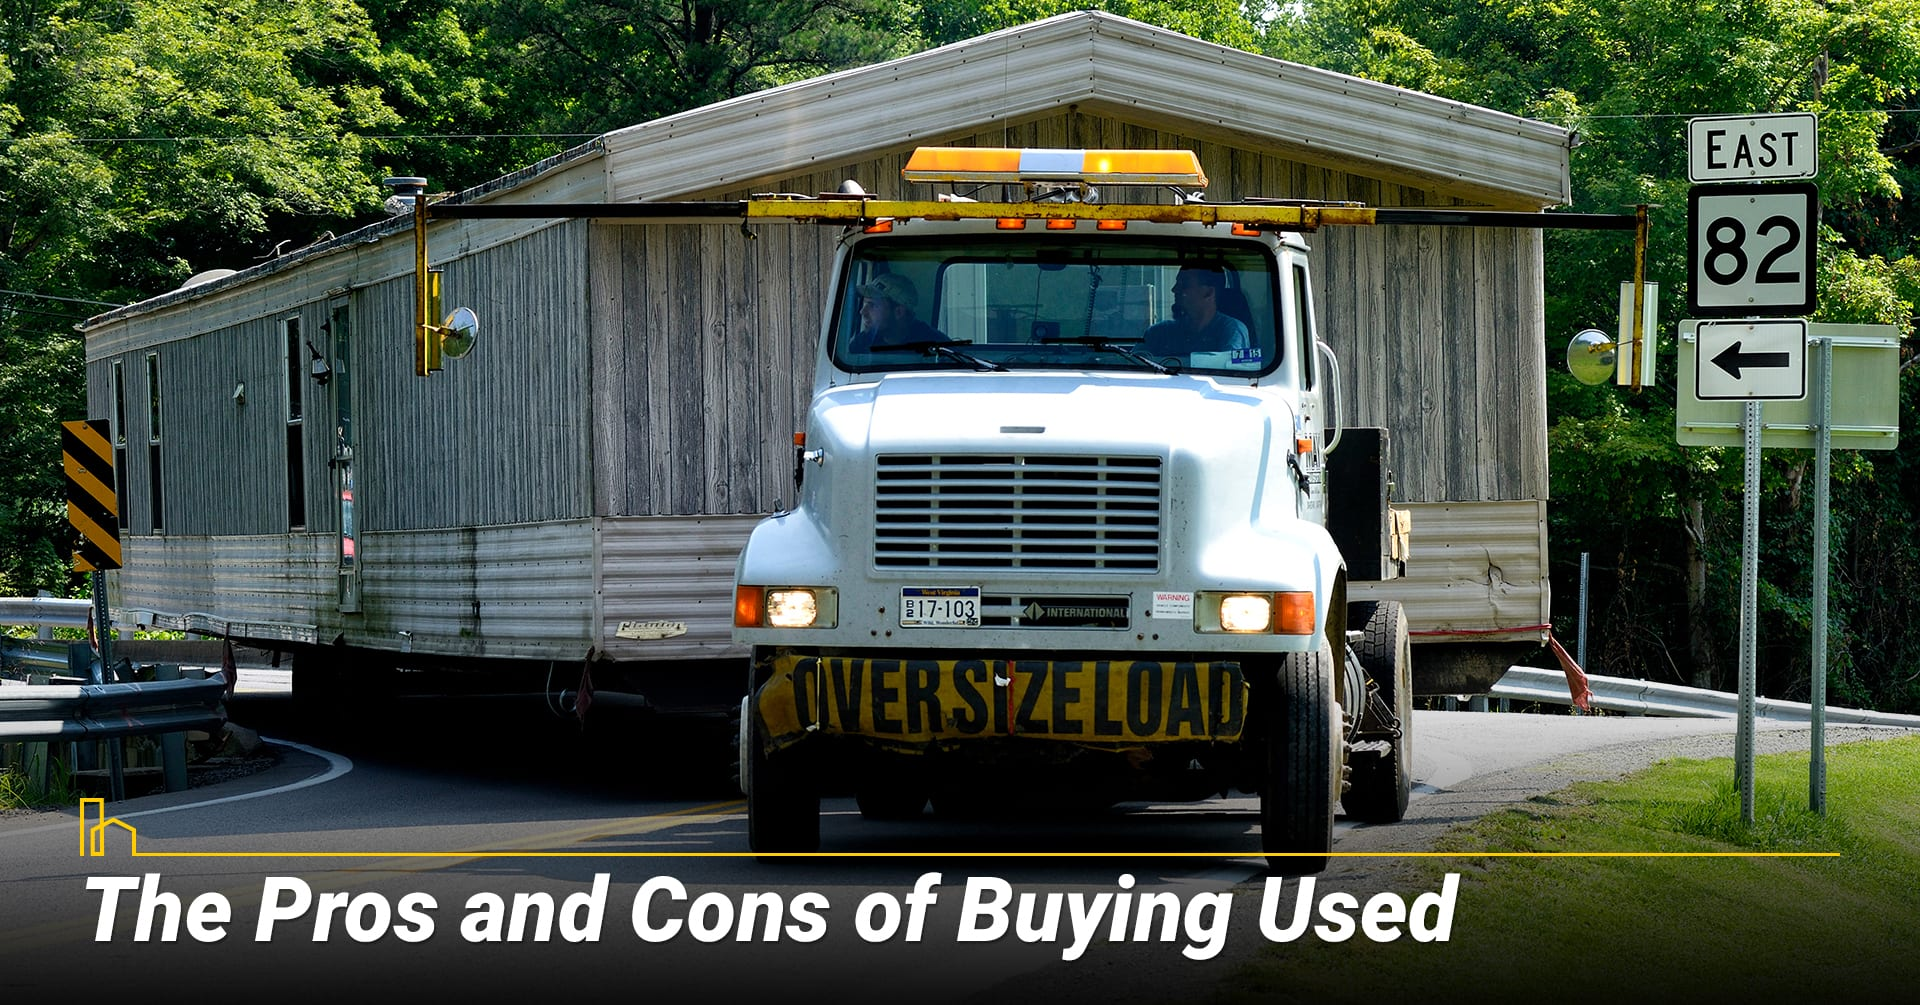 The Pros and Cons of Buying Used, things to consider when buying a used manufactured home